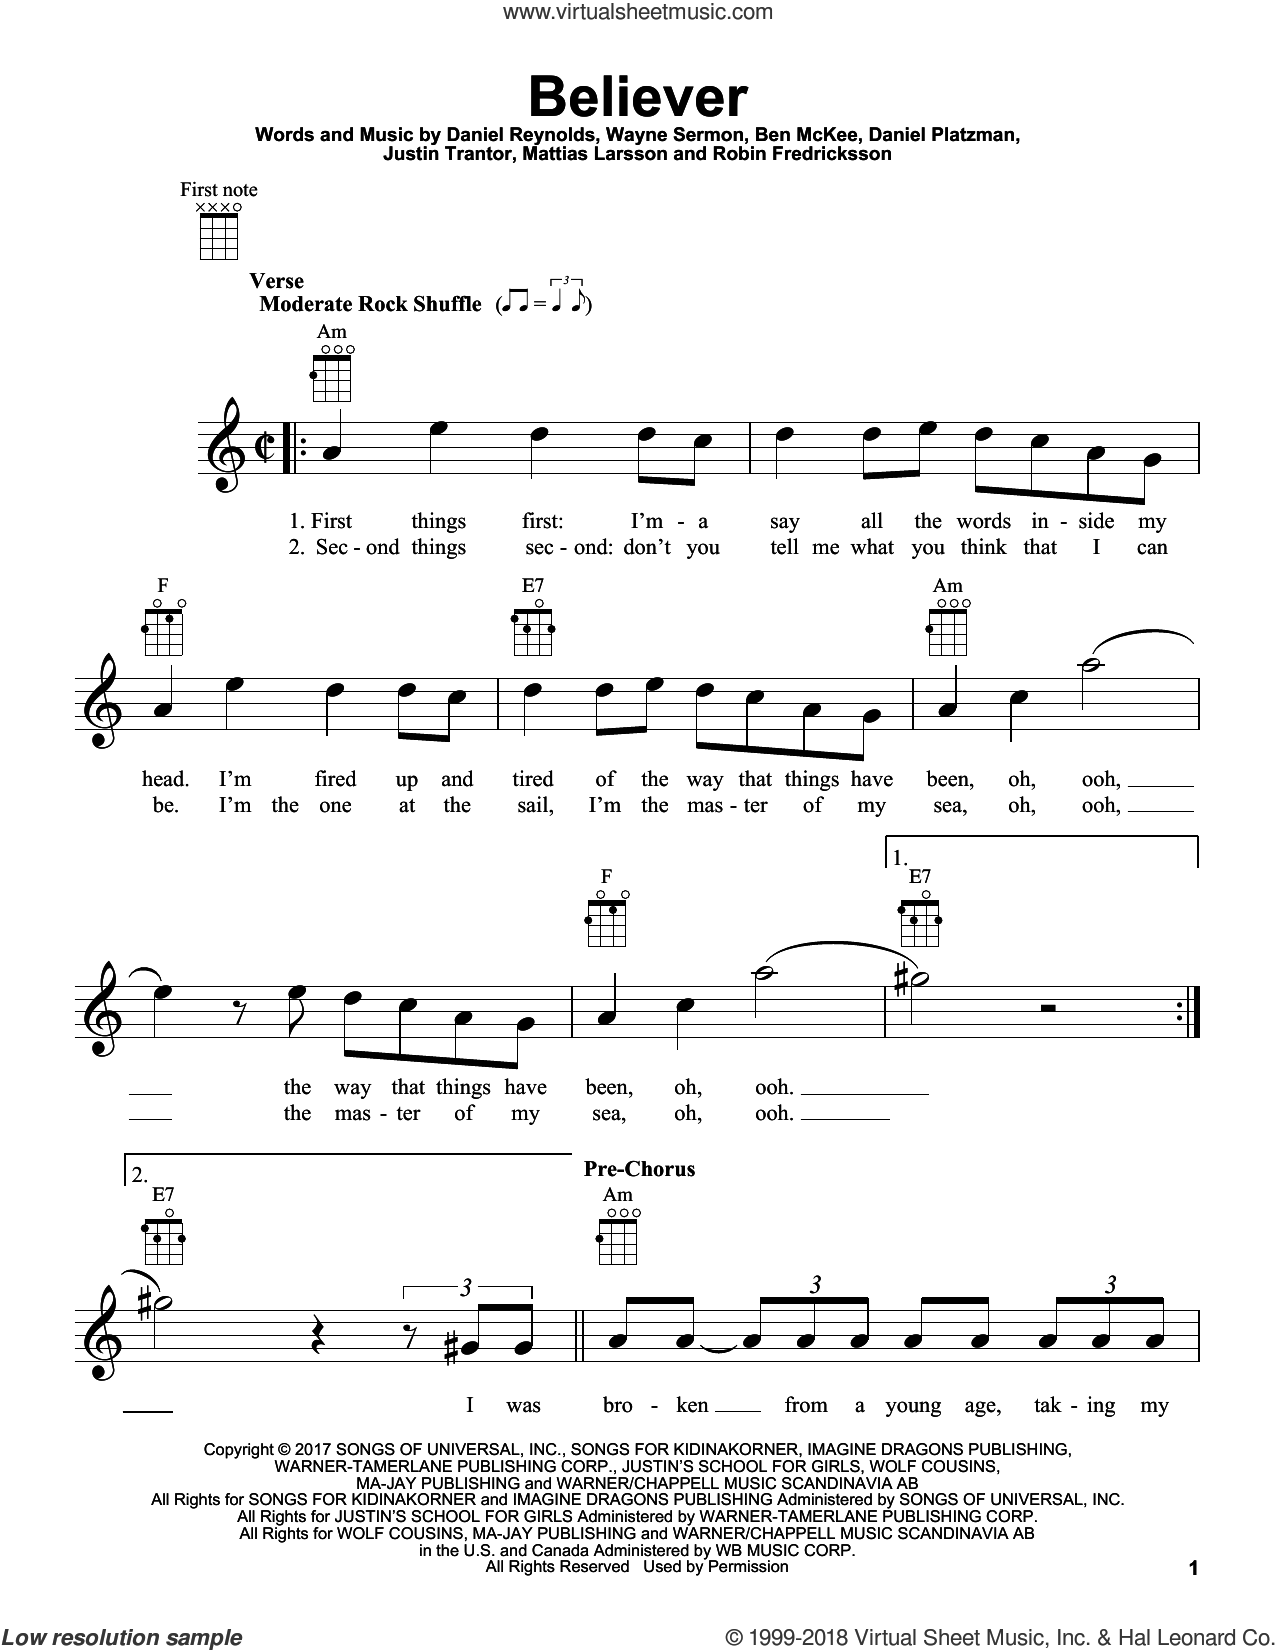 Believer sheet music for ukulele by Imagine Dragons, Ben McKee, Dan Reynolds, Daniel Platzman, Justin Tranter, Mattias Larsson, Robin Fredriksson and Wayne Sermon, intermediate